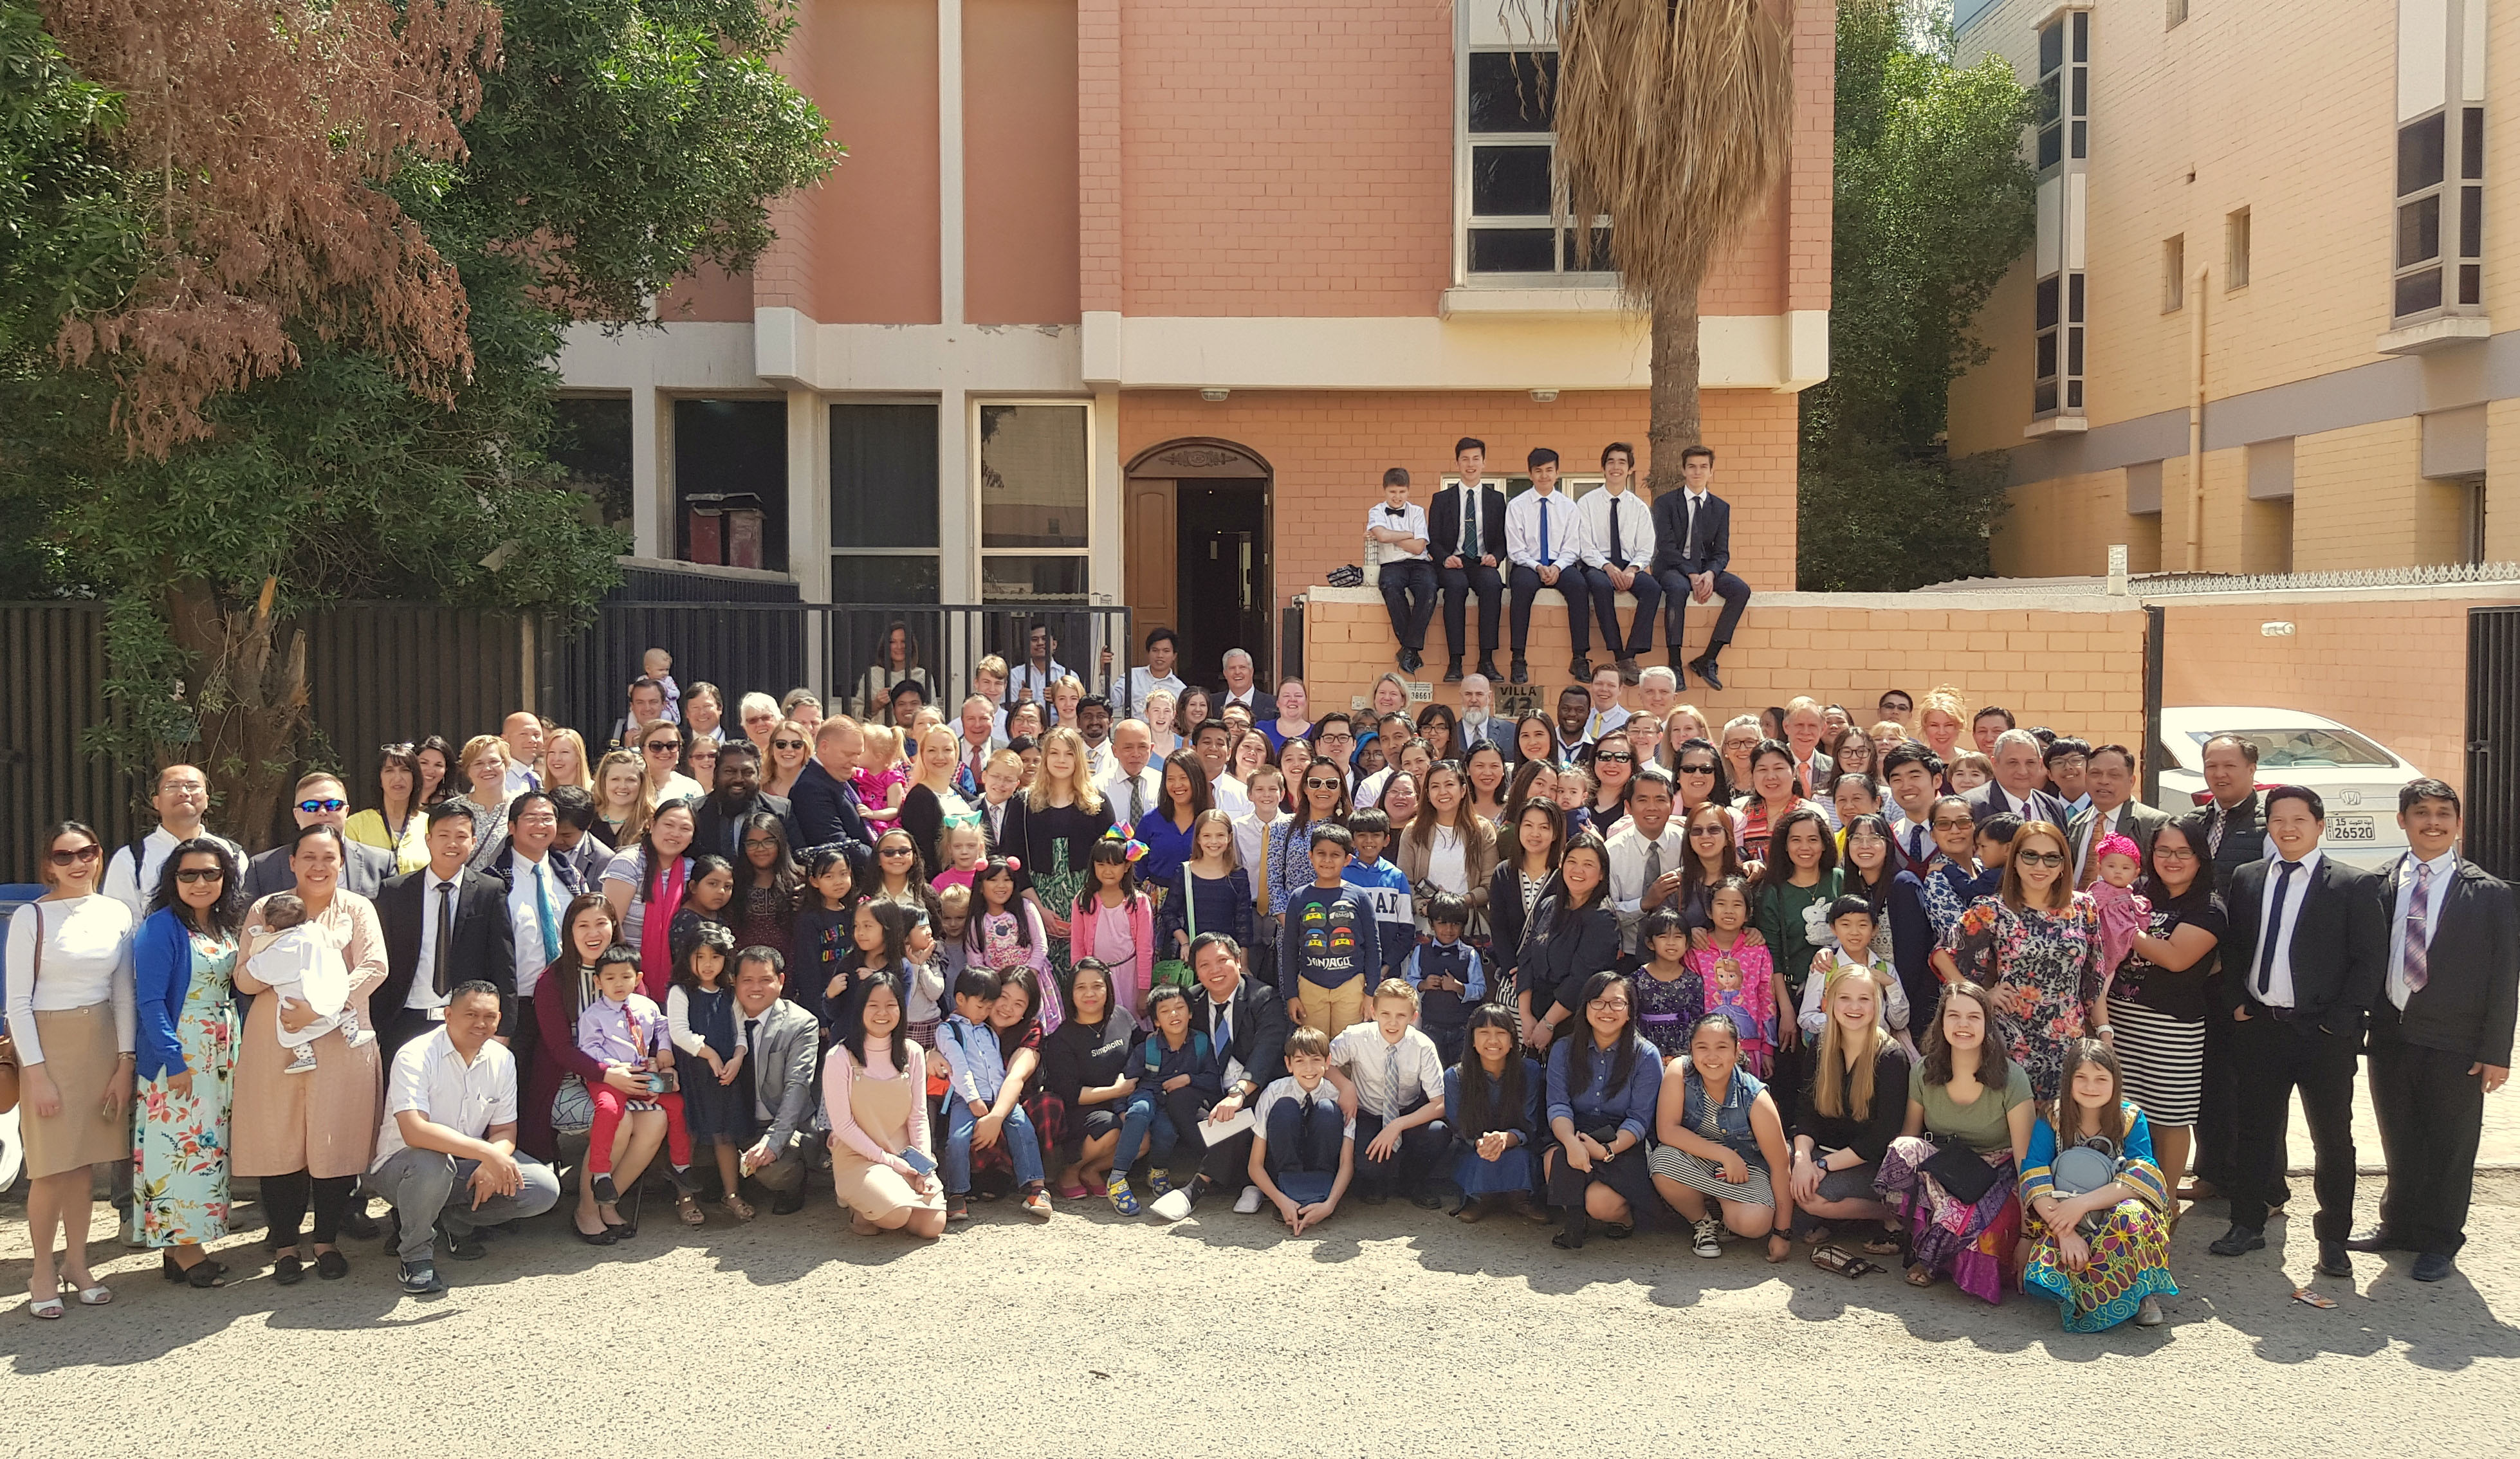 Latter-day Saints and friends gather in front of the meetinghouse in Kuwait.